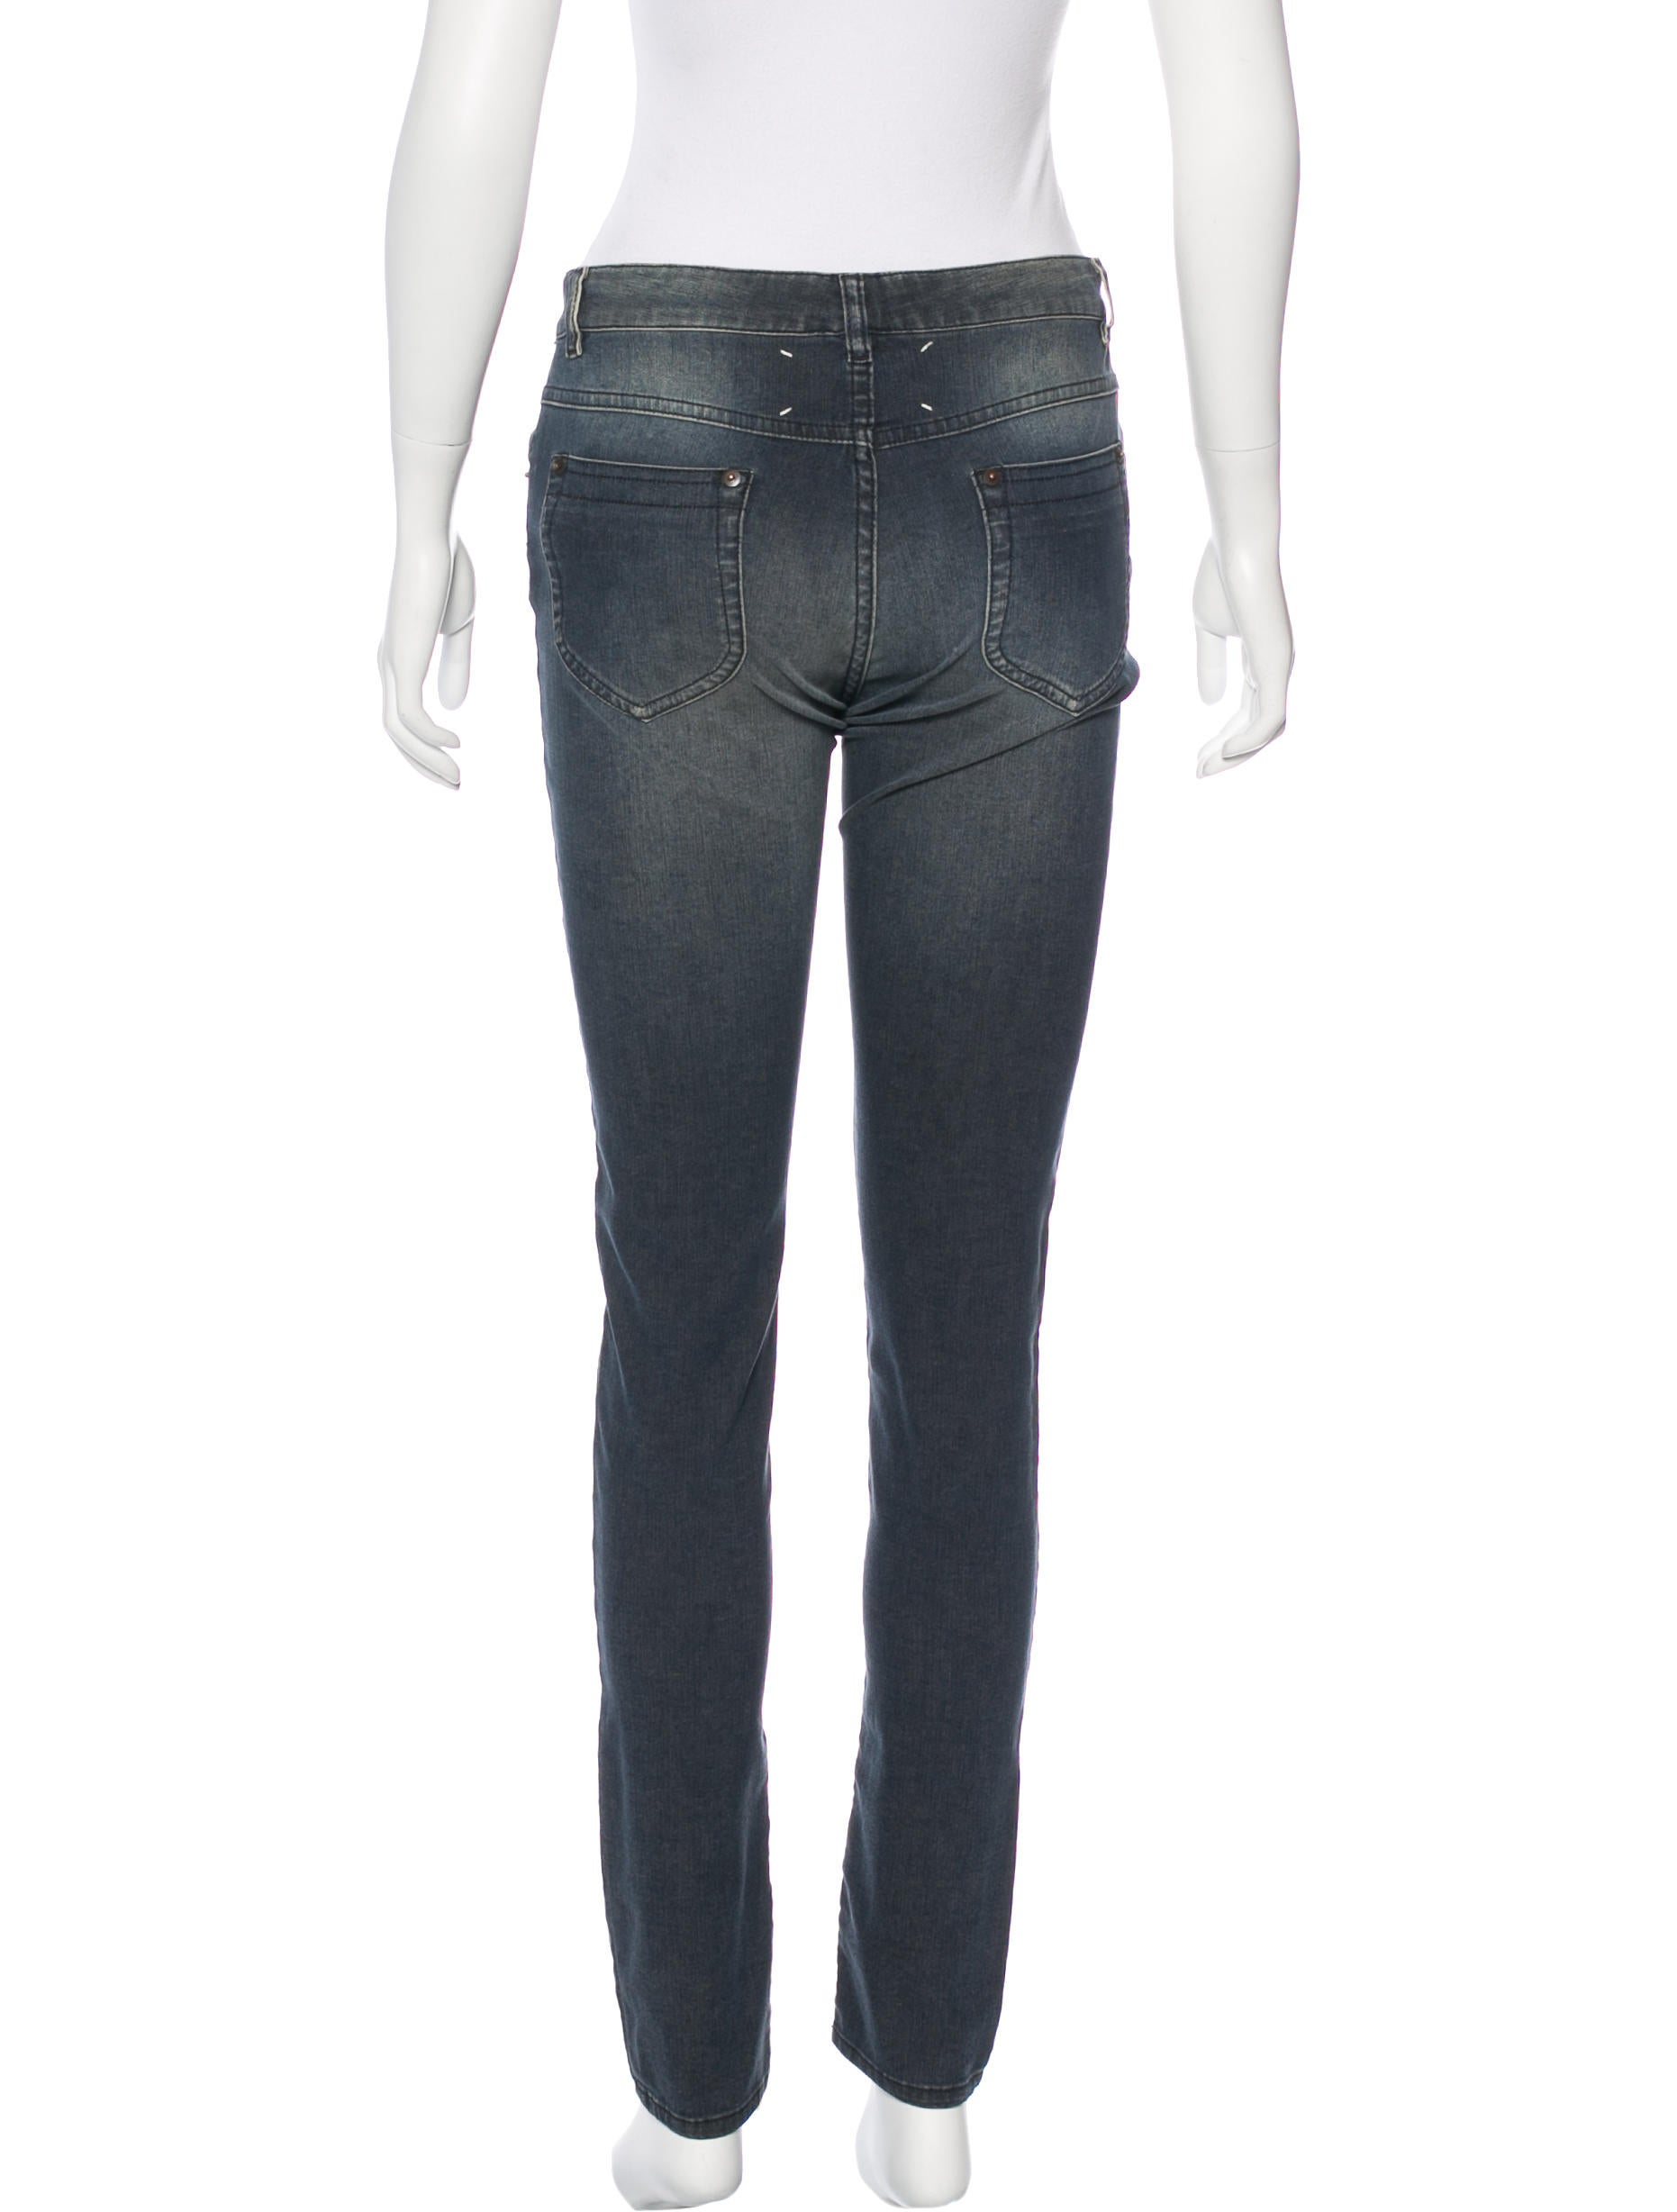 Maison margiela mid rise skinny jeans w tags clothing for 10 moulmein rise la maison